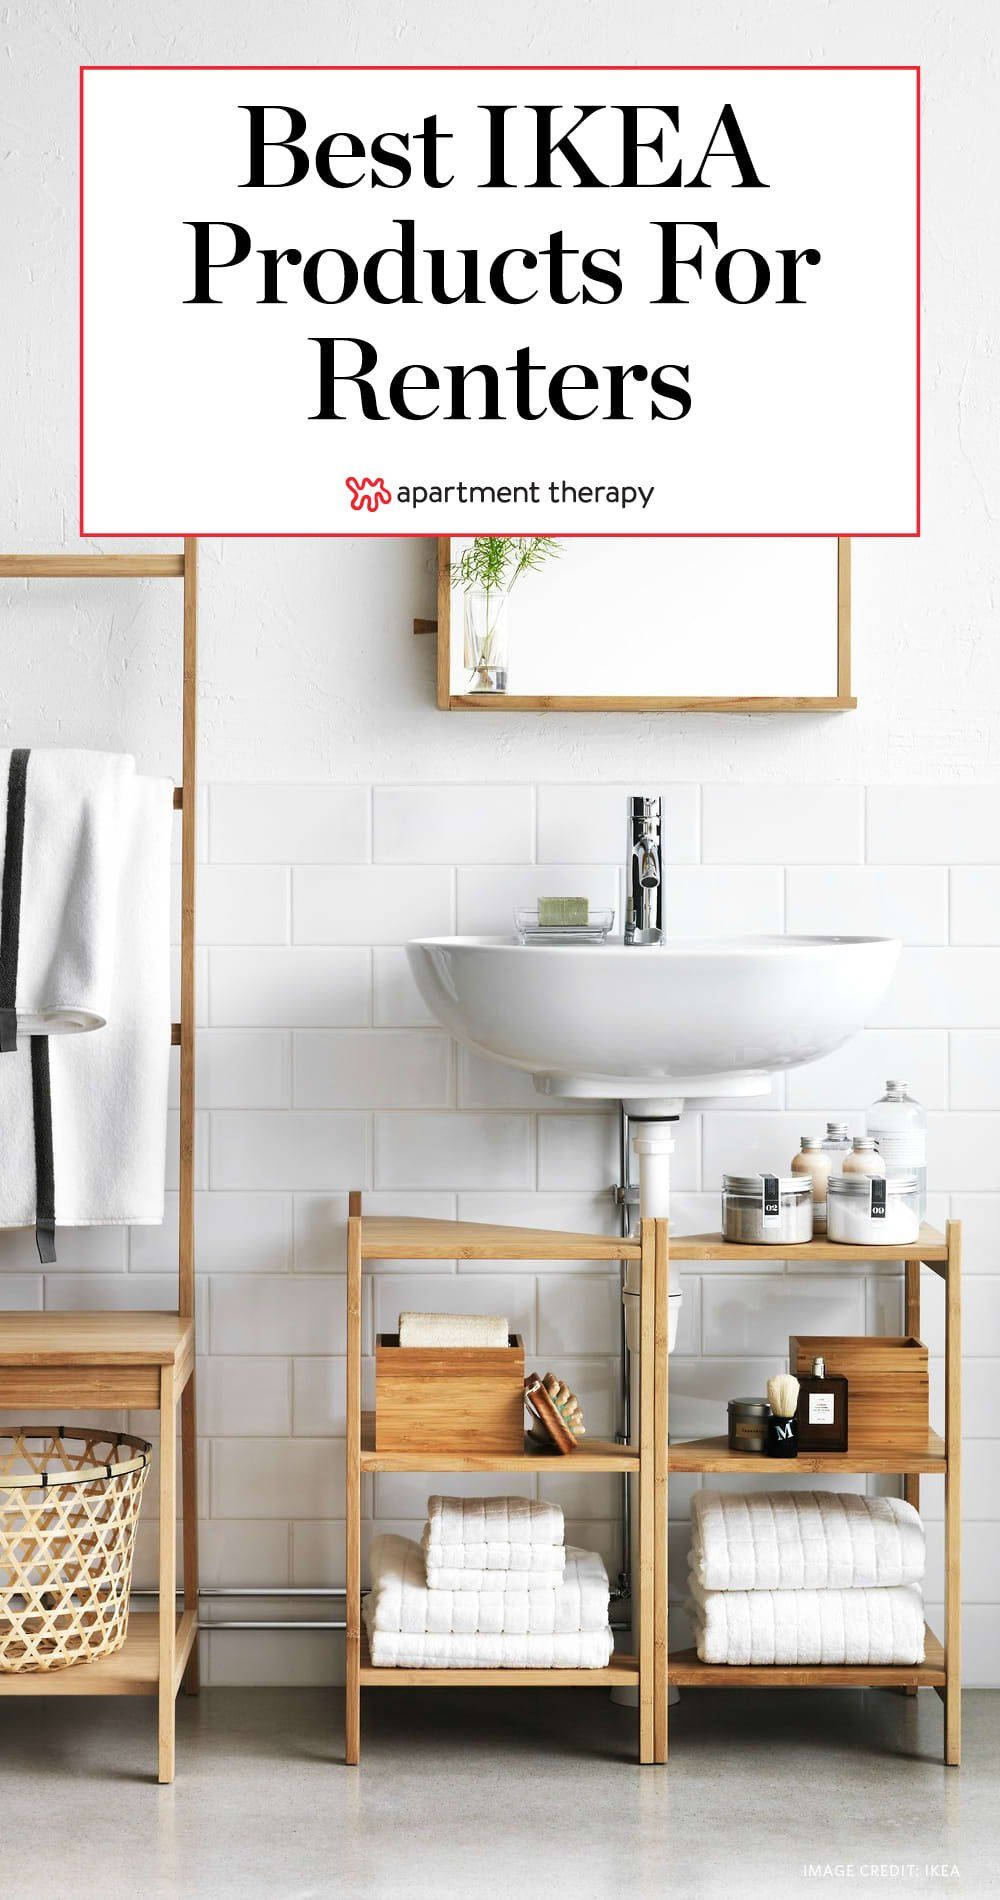 11 Ikea Products Every Renter Should Know About Small Bathroom Furniture Space Saving Bathroom Small Bathroom Storage